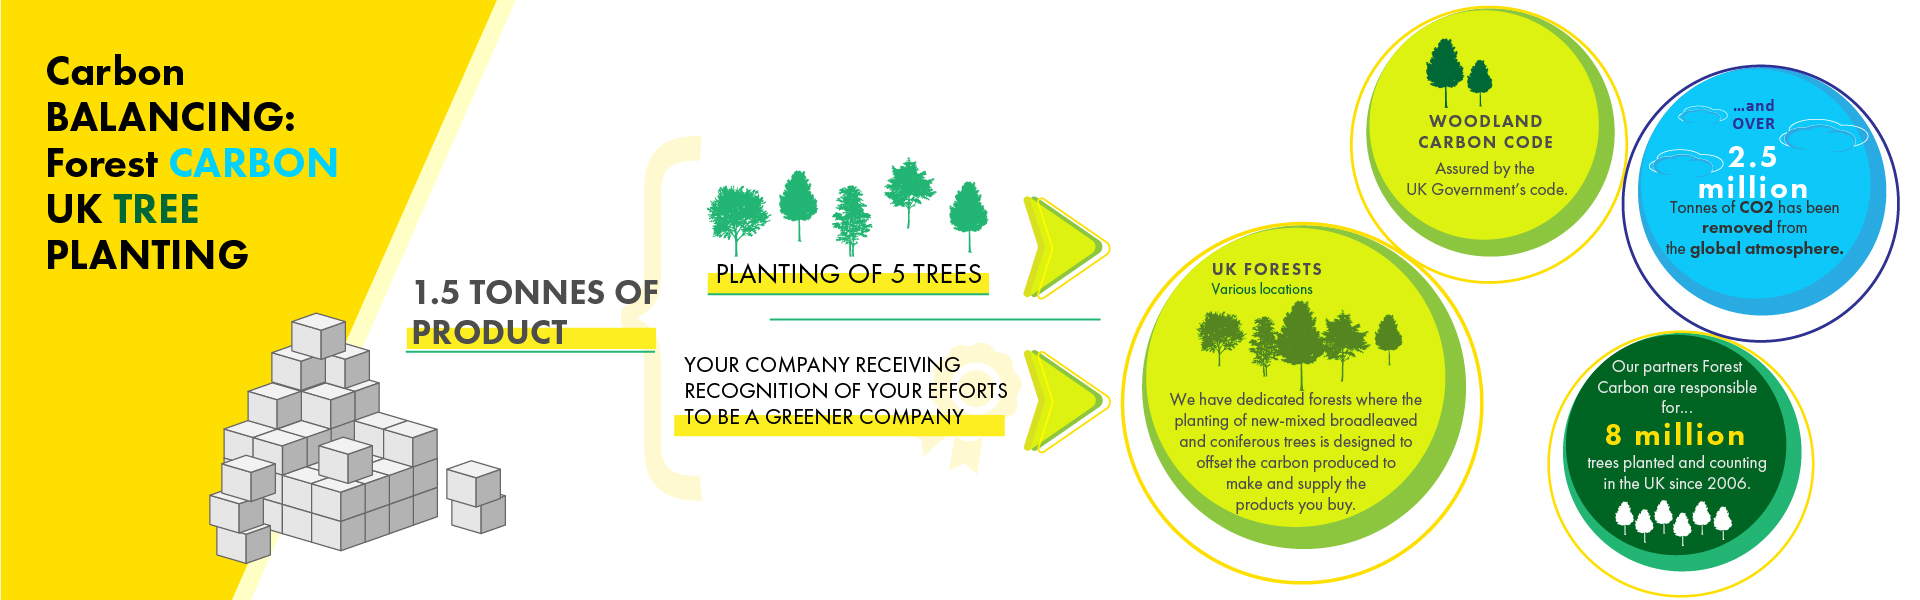 Plant_tree_middle_infographic_banner